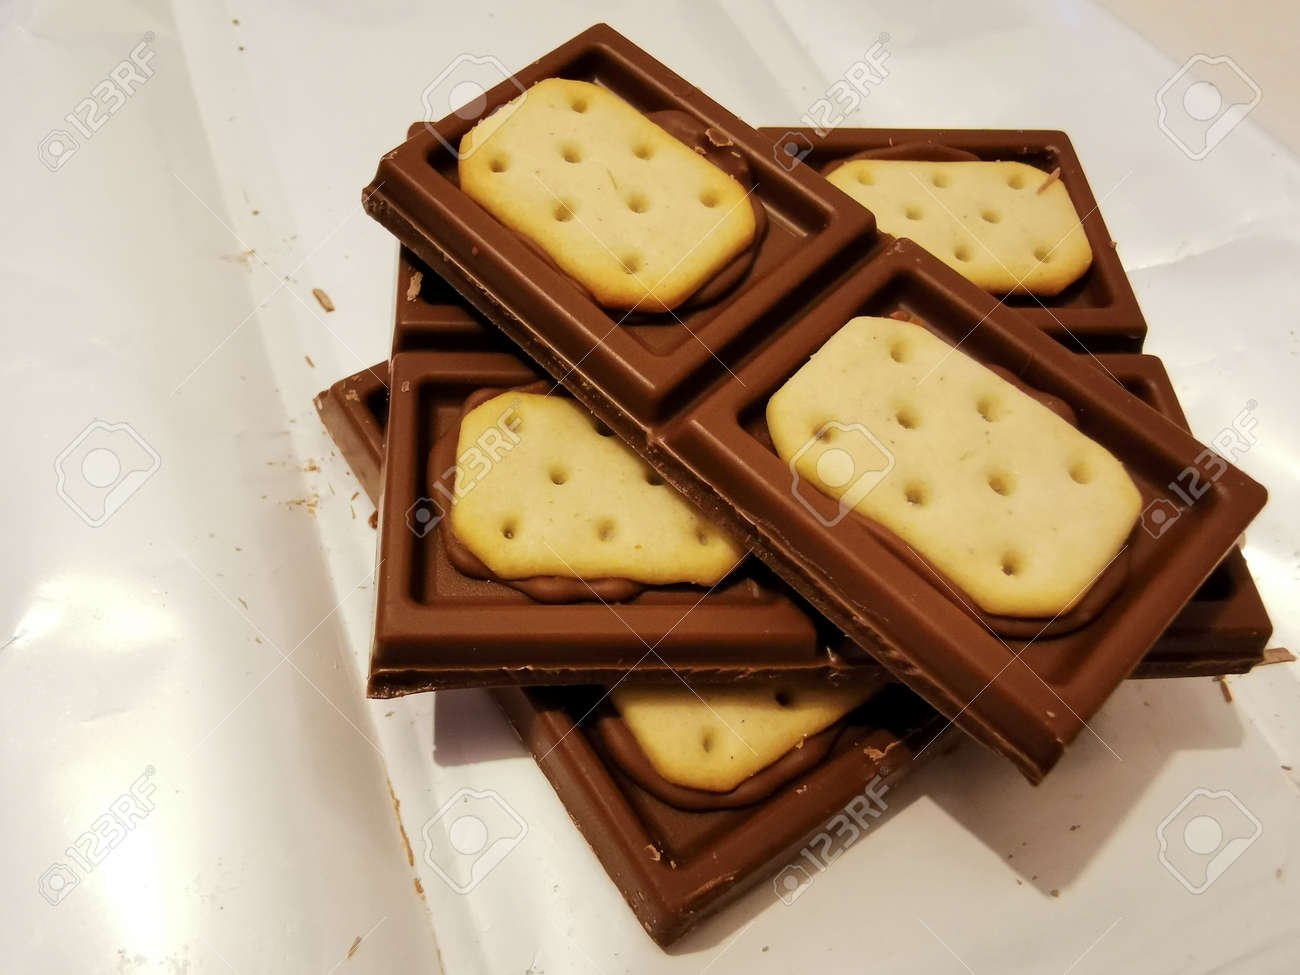 Pieces of brown chocolate with salty crackers - 162235308